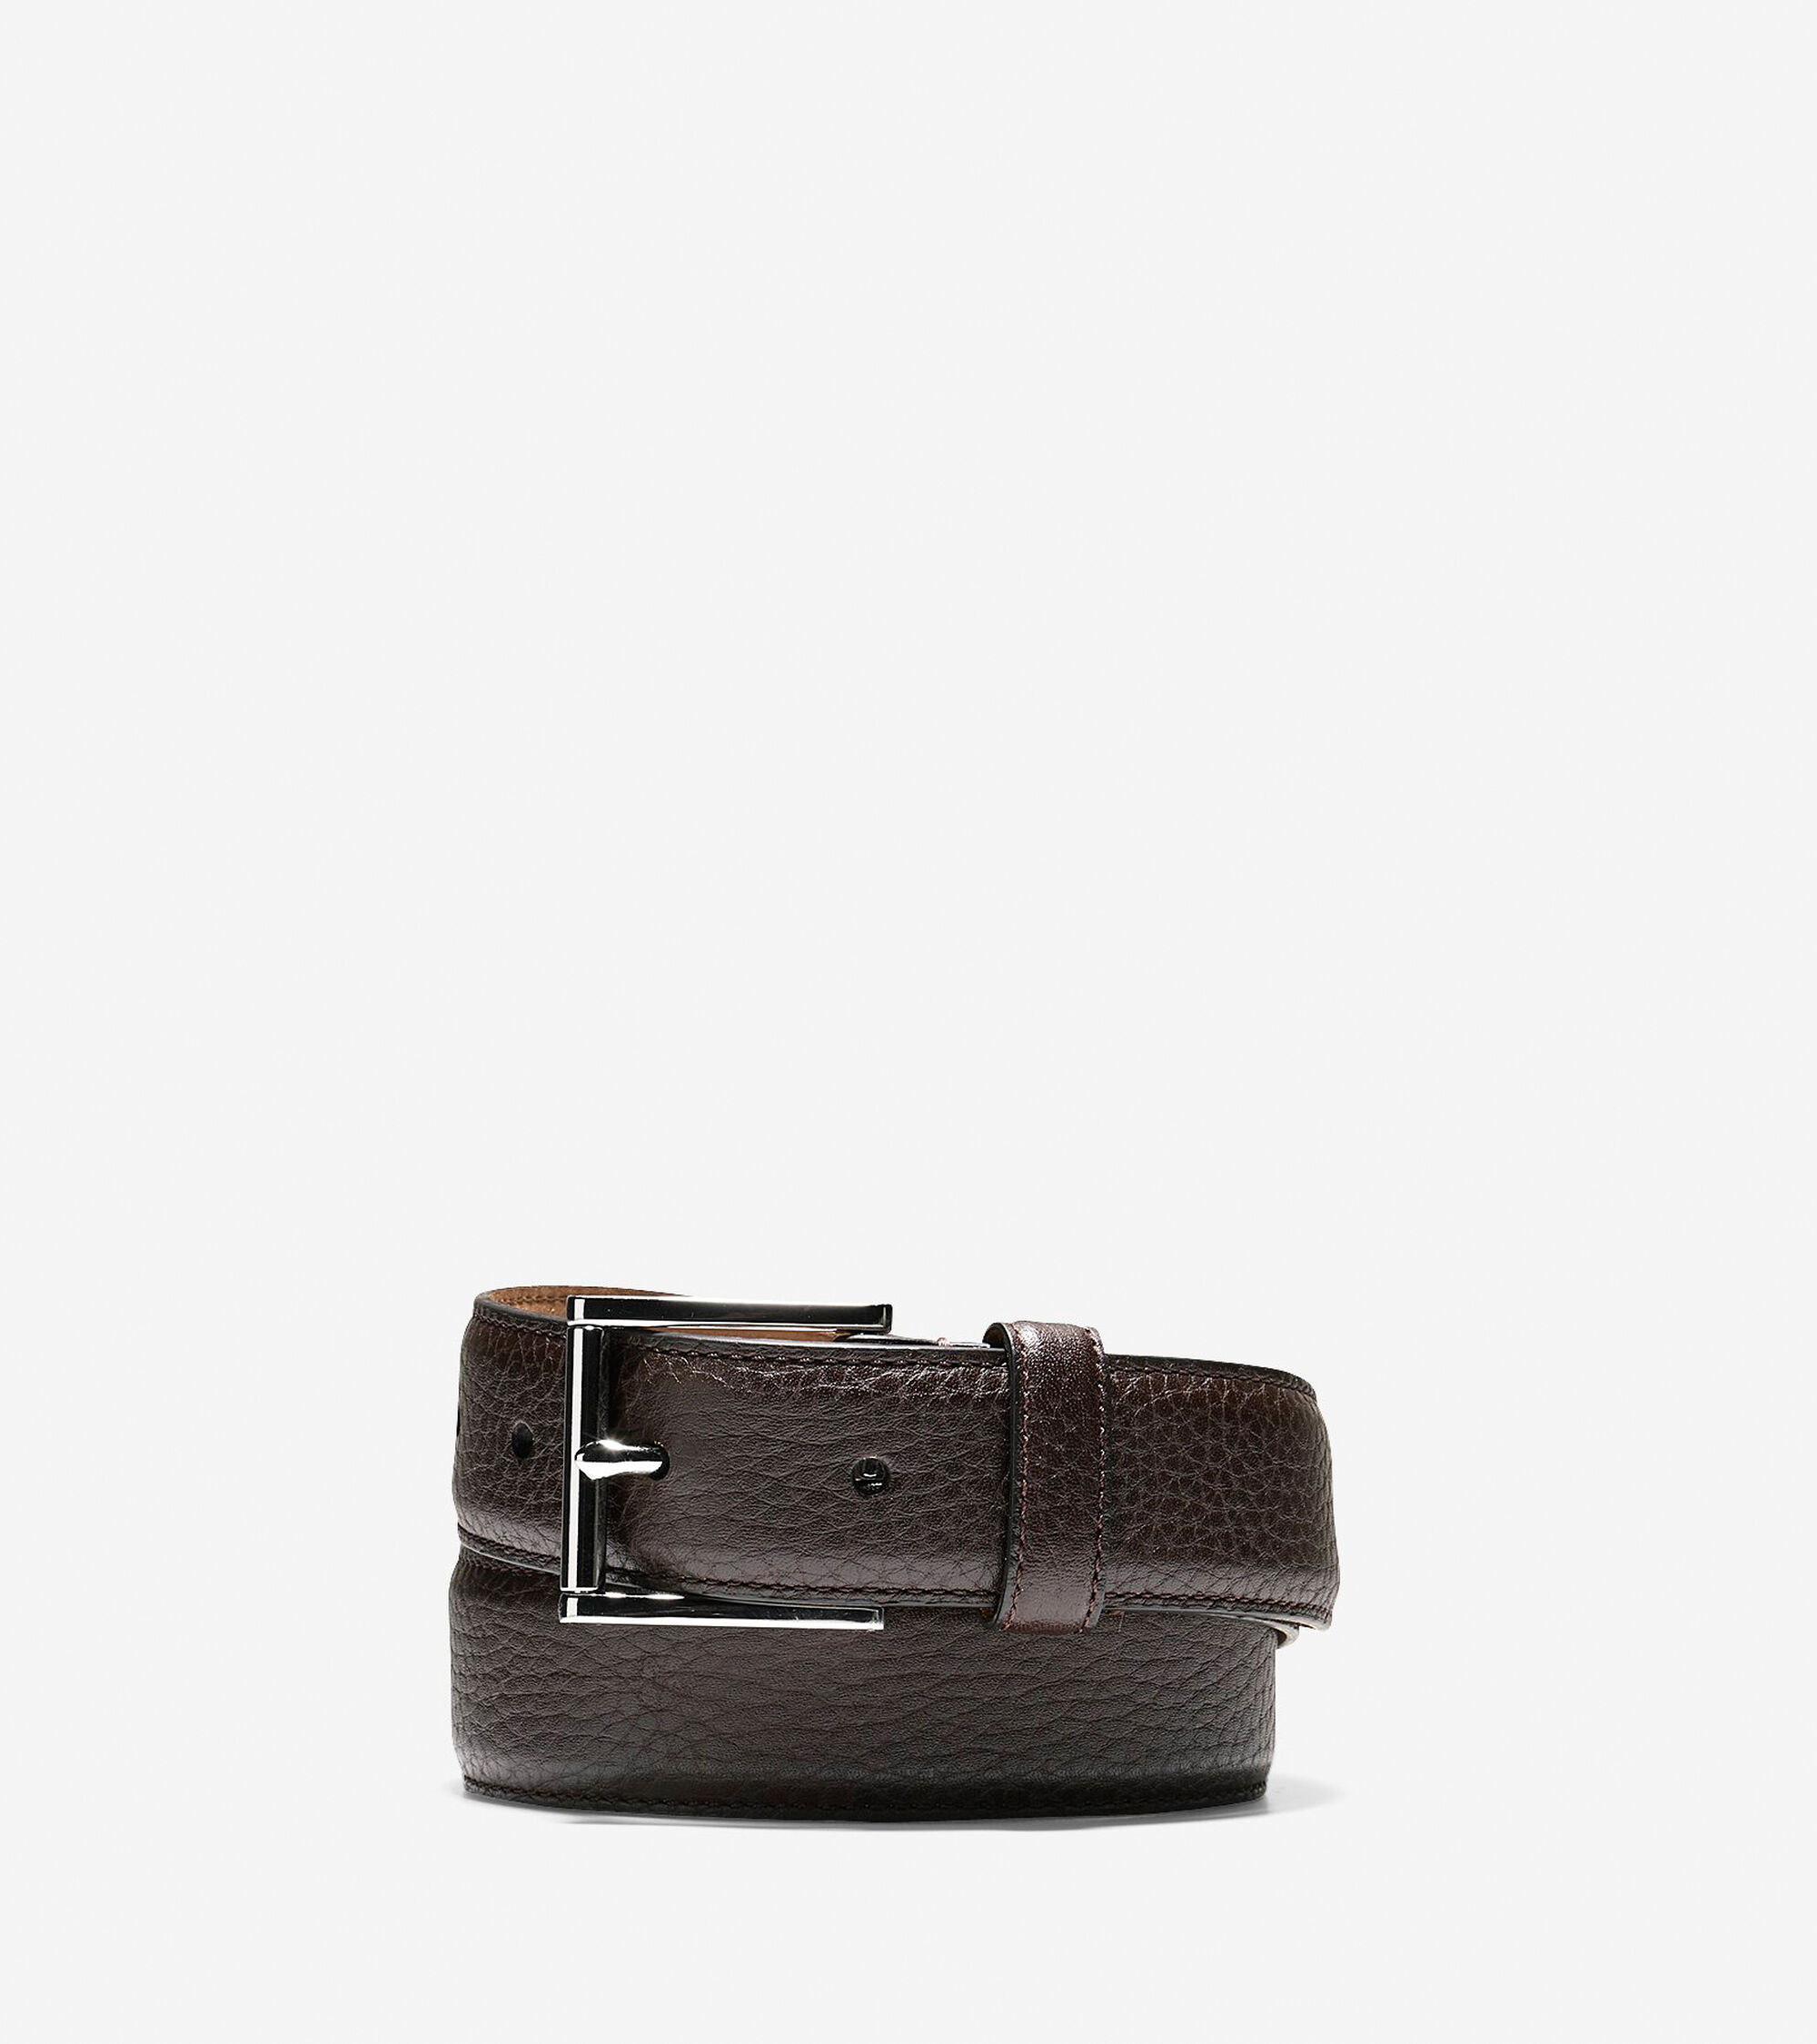 Accessories > 32mm Pebble Leather Belt